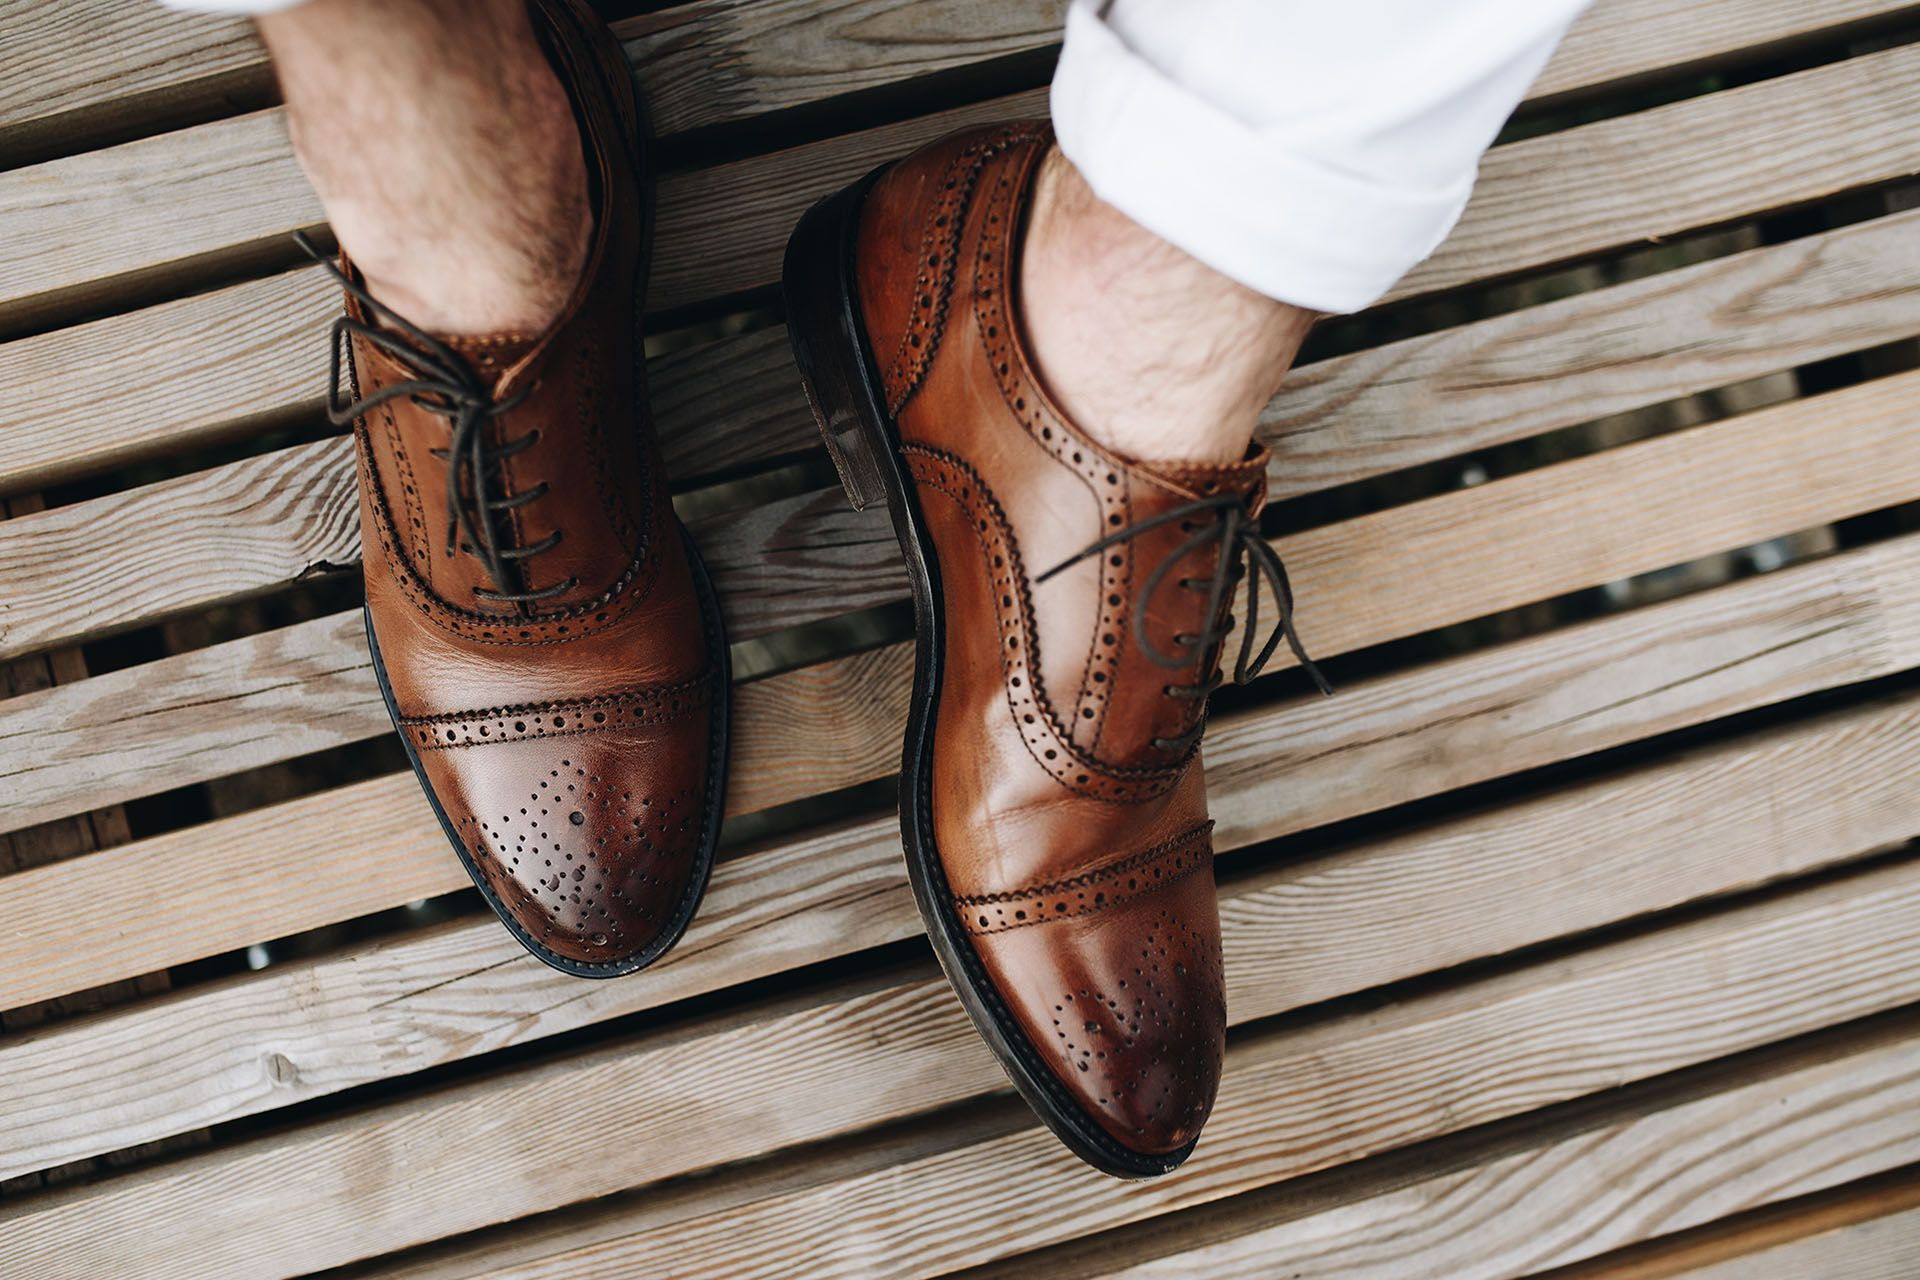 Buty Meskie Oksfordy Partenope Made In Italy Cielece Oksfordy Koniakowe Oksfordy Oksford Semi Brogue Skorzane O Dress Shoes Men Dress Shoes Oxford Shoes